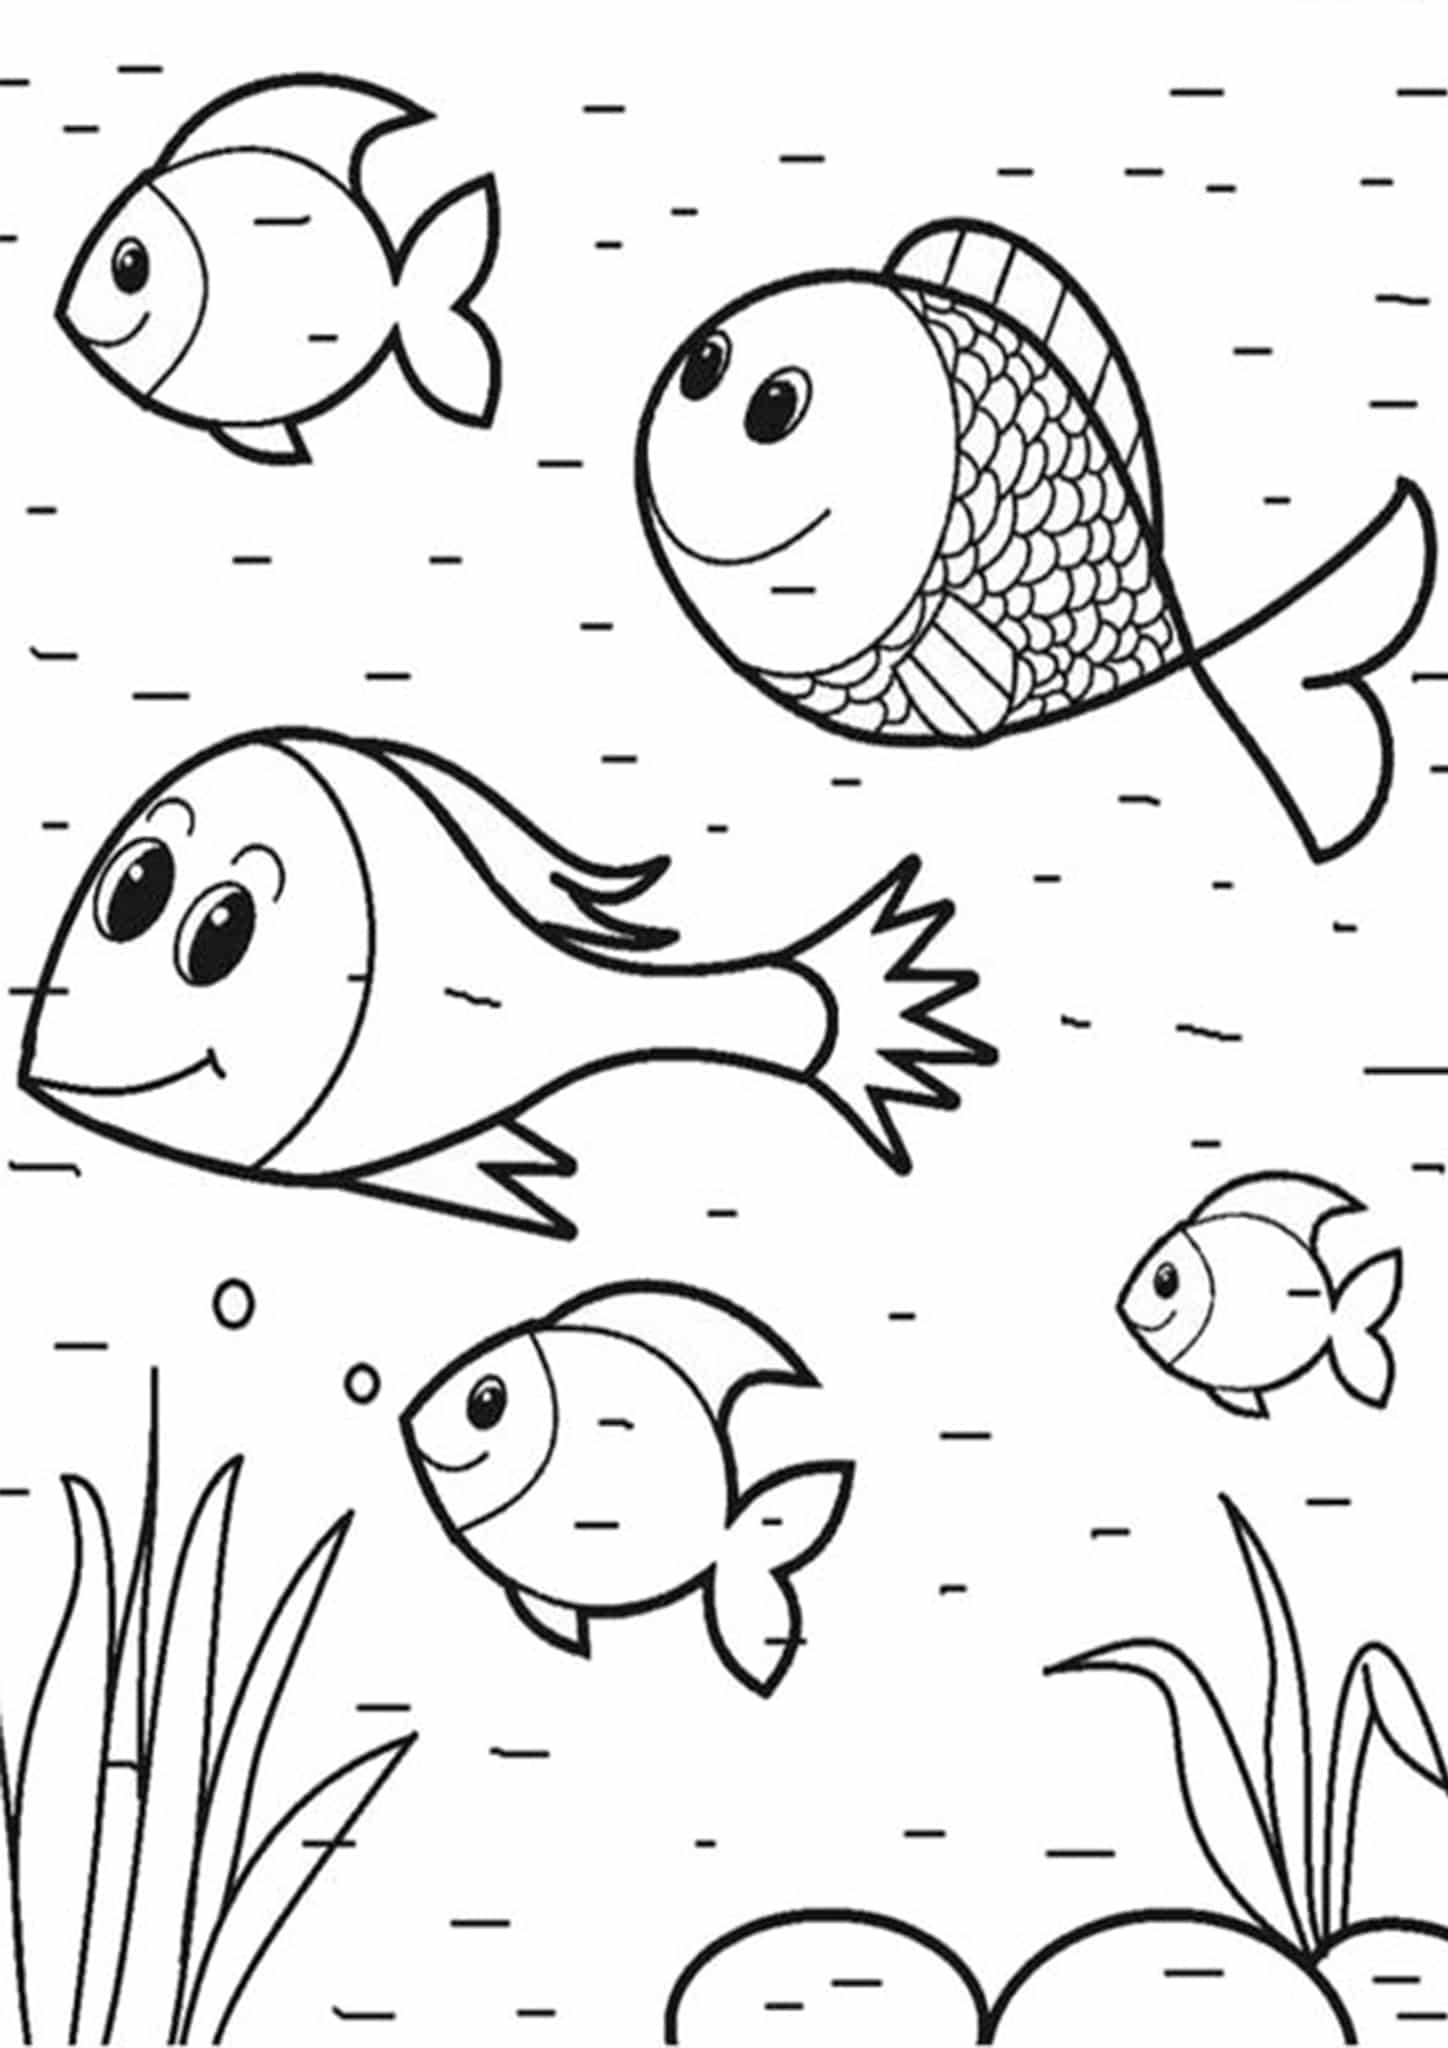 free coloring pages fish print download cute and educative fish coloring pages free pages coloring fish